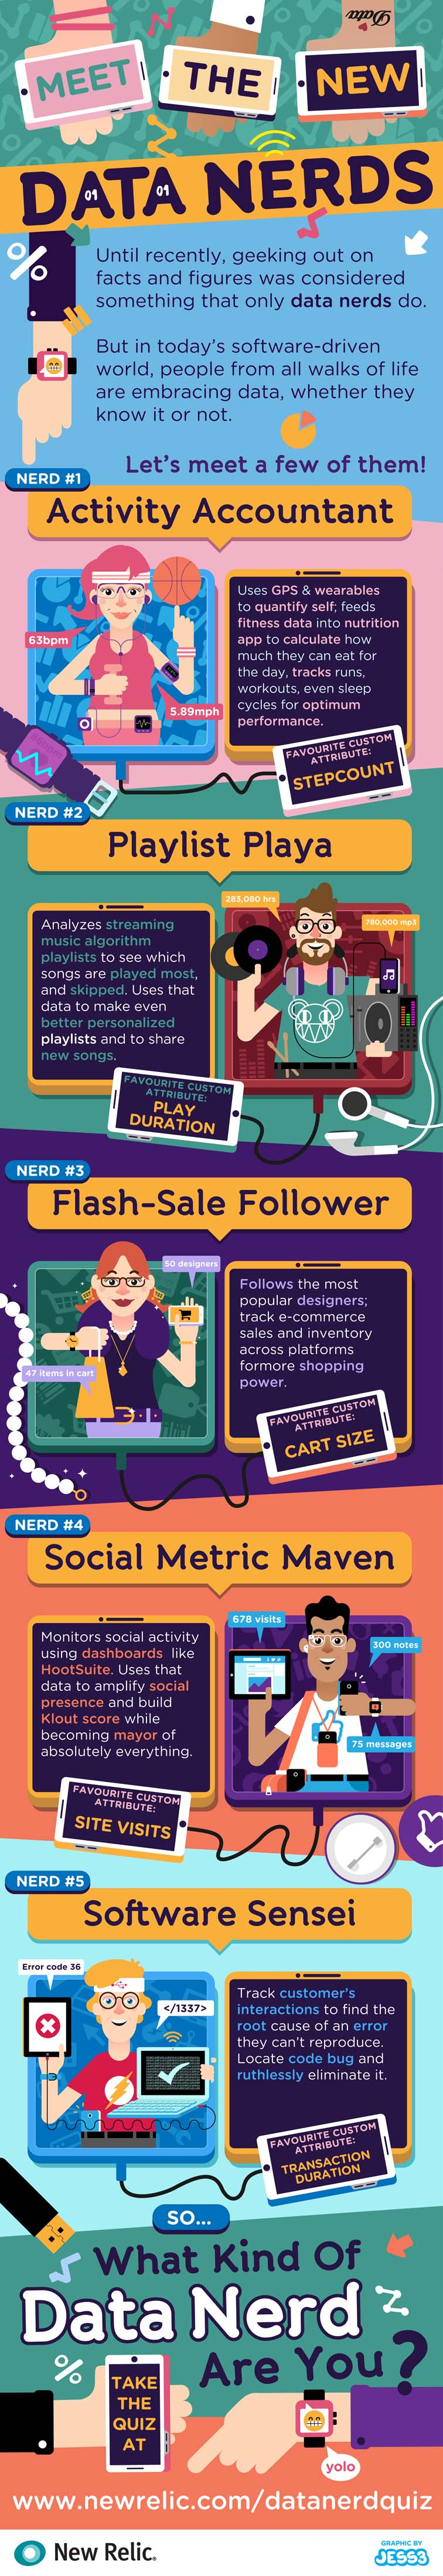 New Relic Data Nerd Infographic 5719